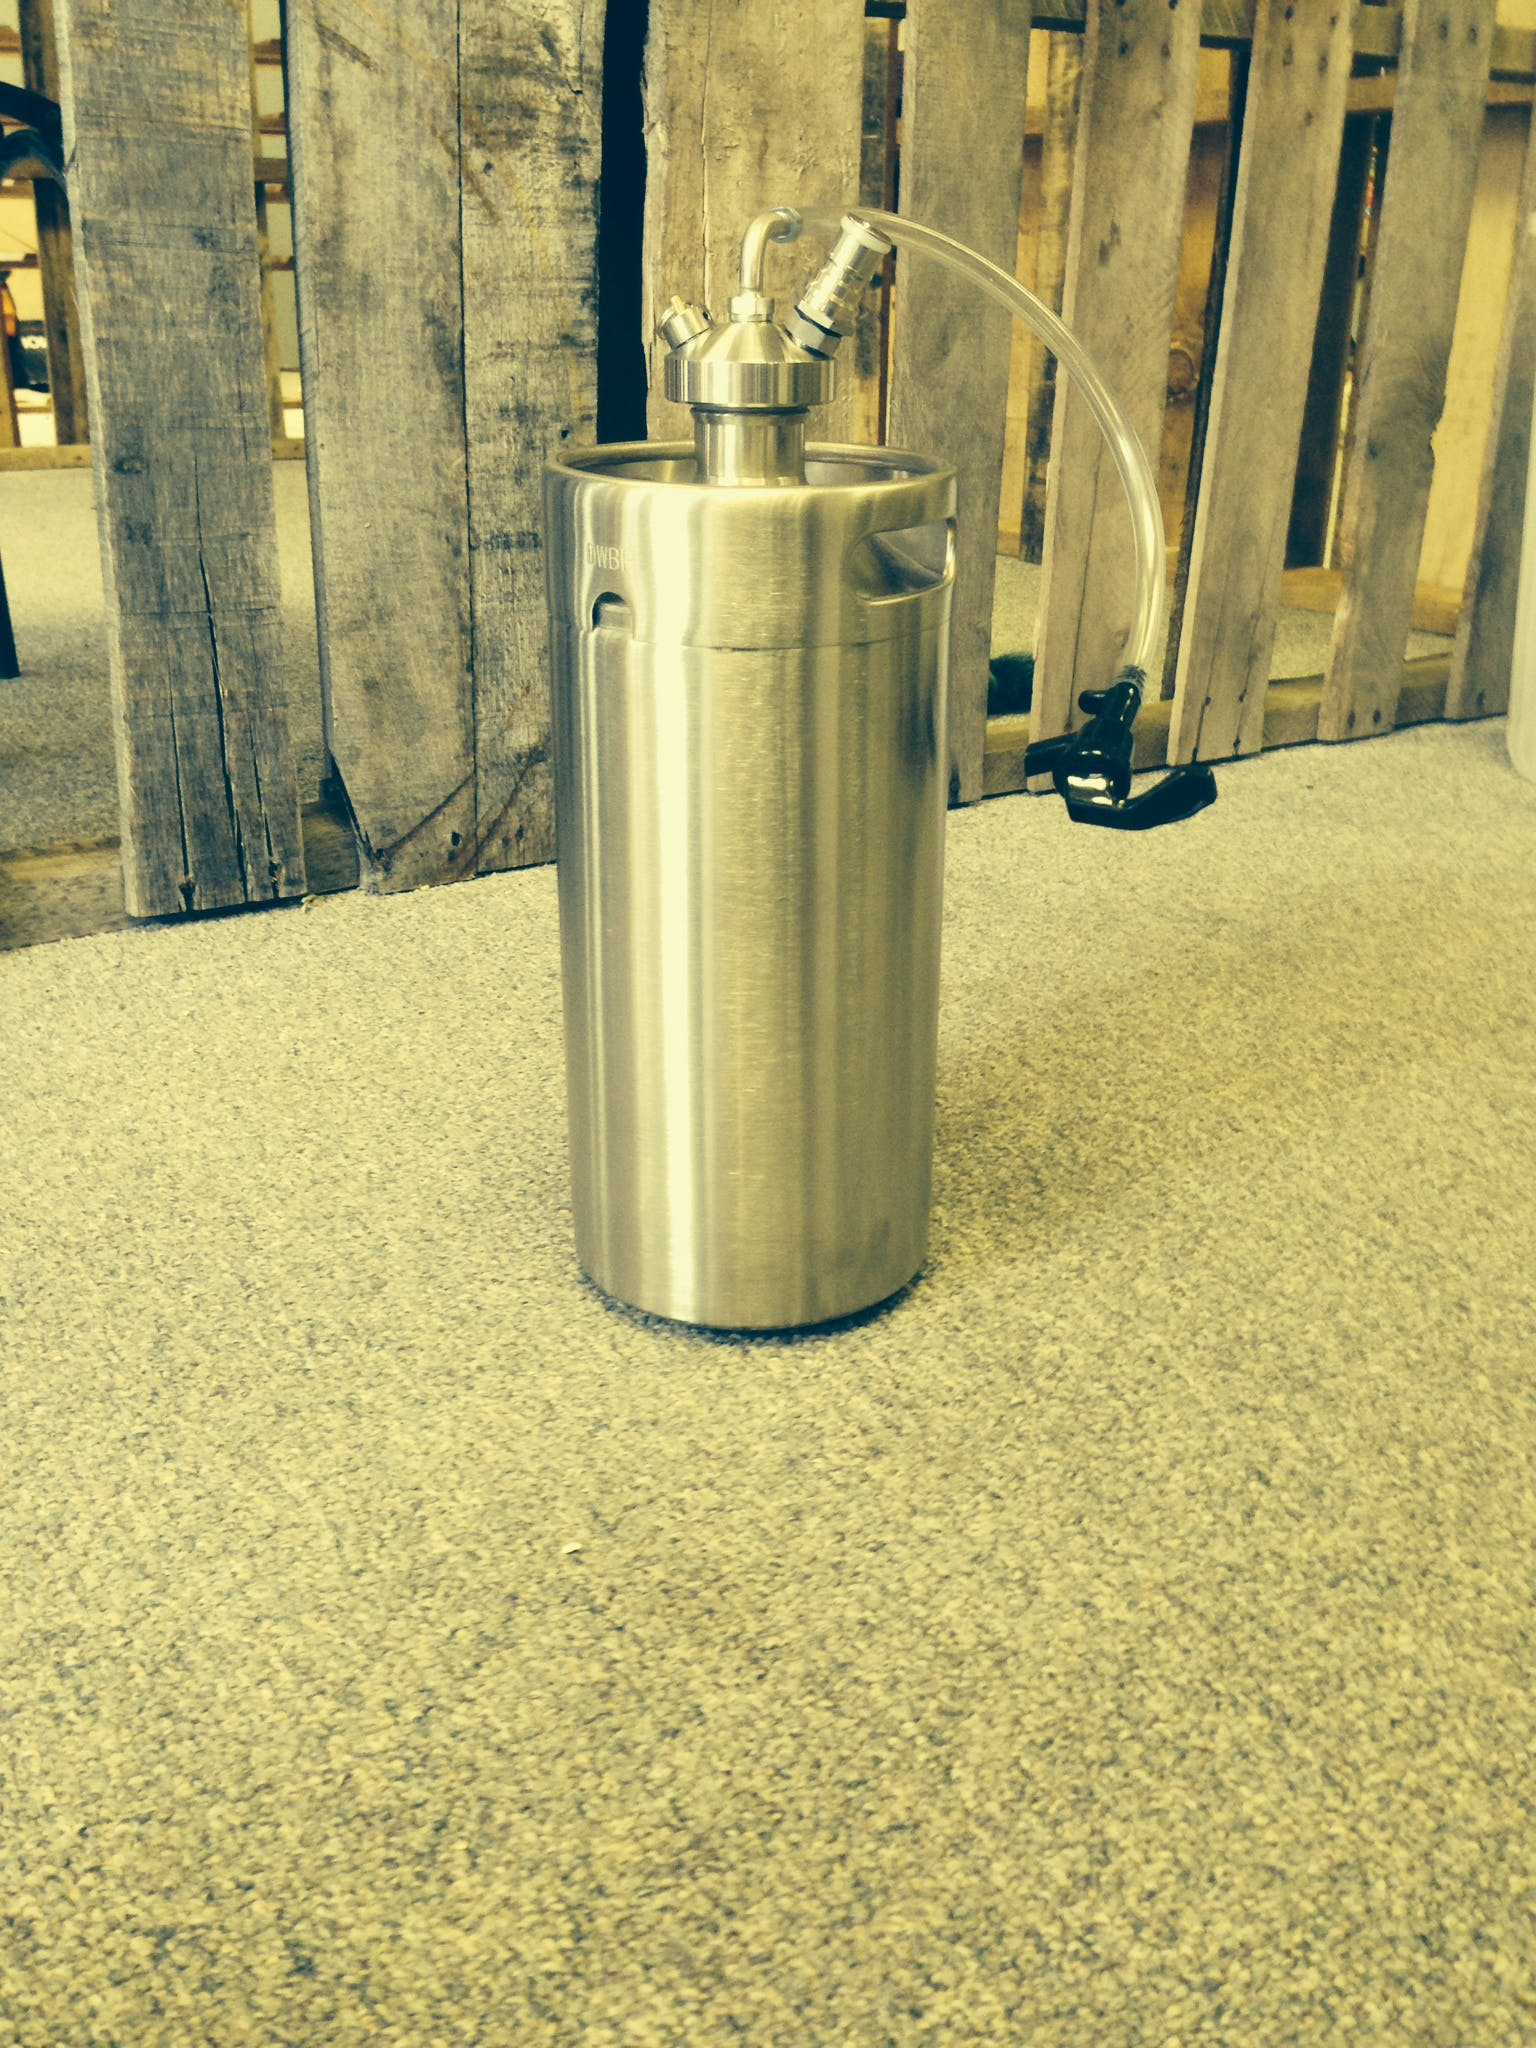 1 Gallon (4 Liter) Keg Growler. Keg growler sold by Zymogear